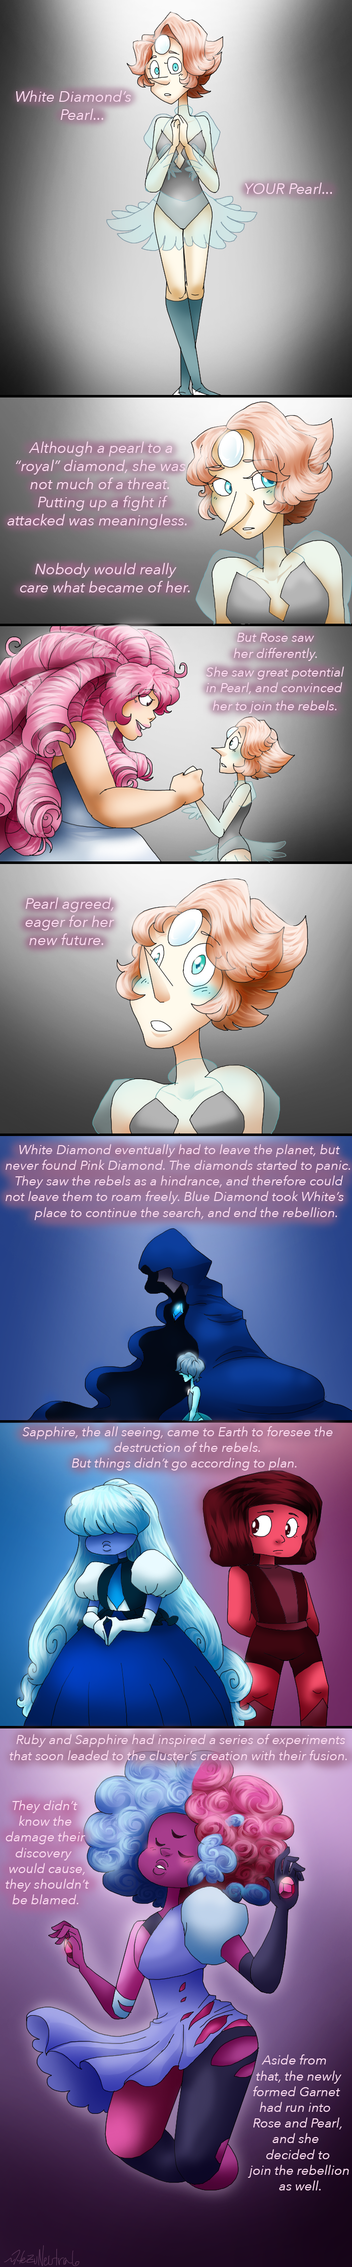 Pink Diamond's tale p3 by HezuNeutral